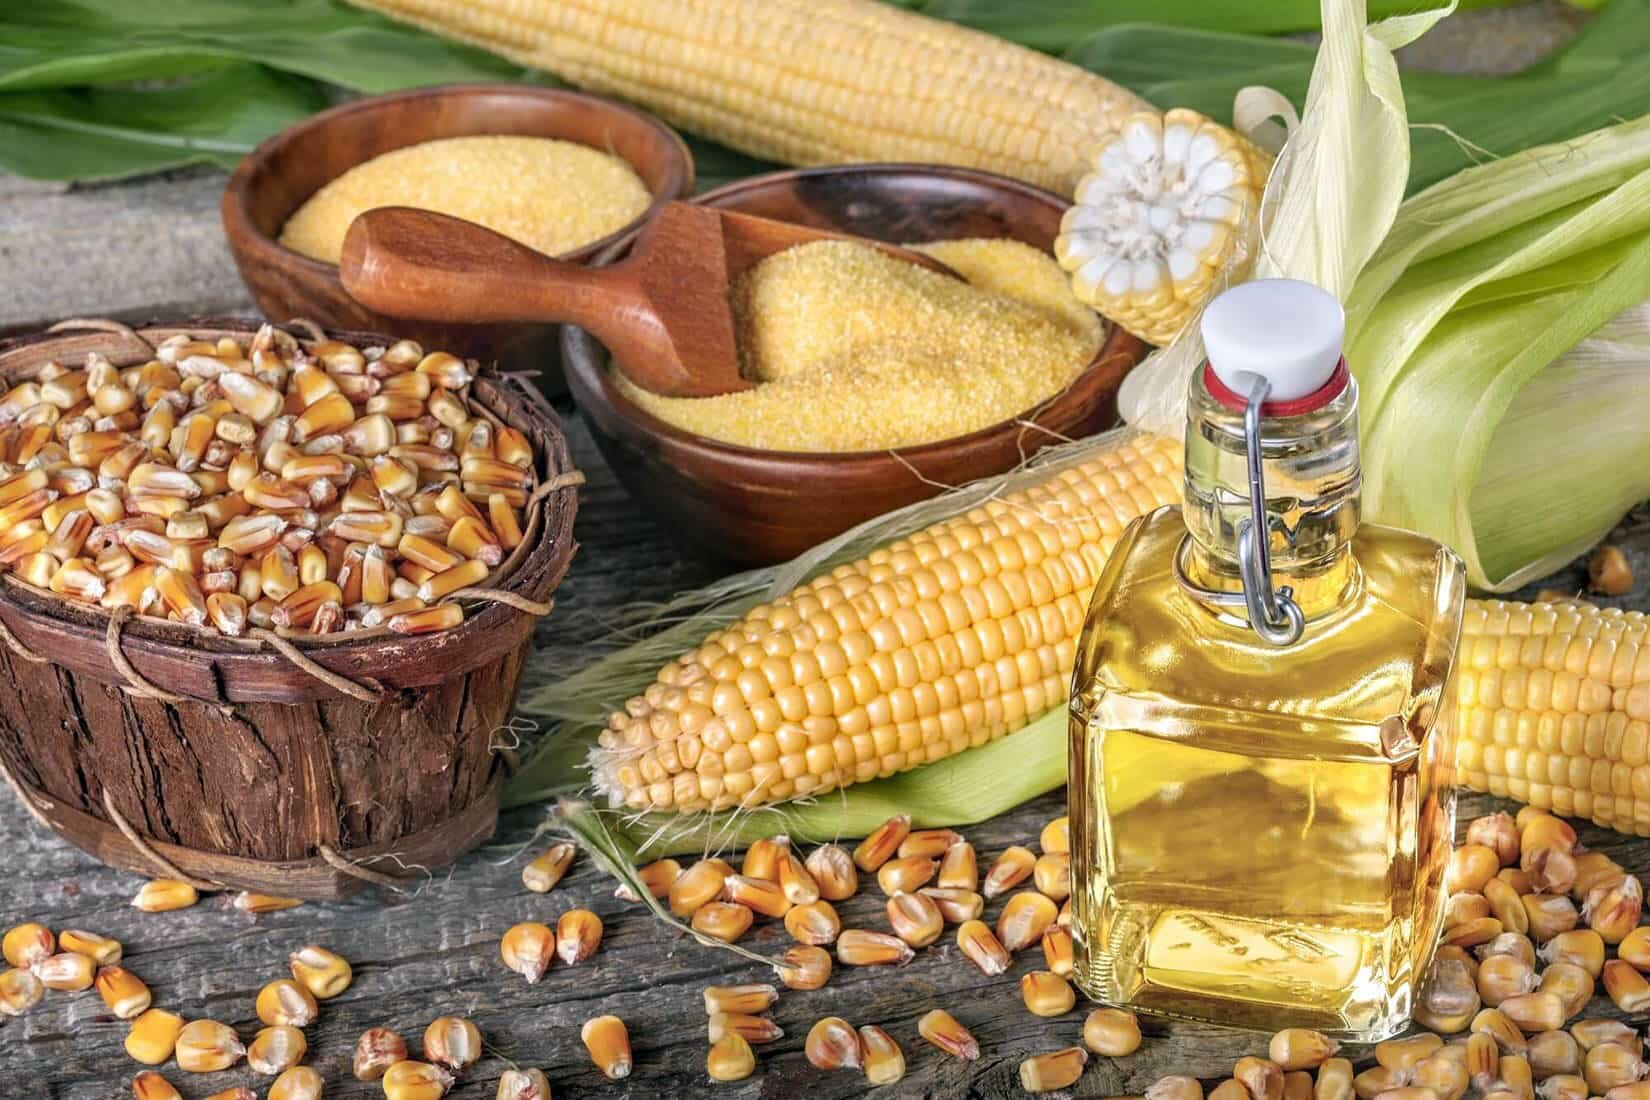 corn oil and dried corn kernels on a wooden table